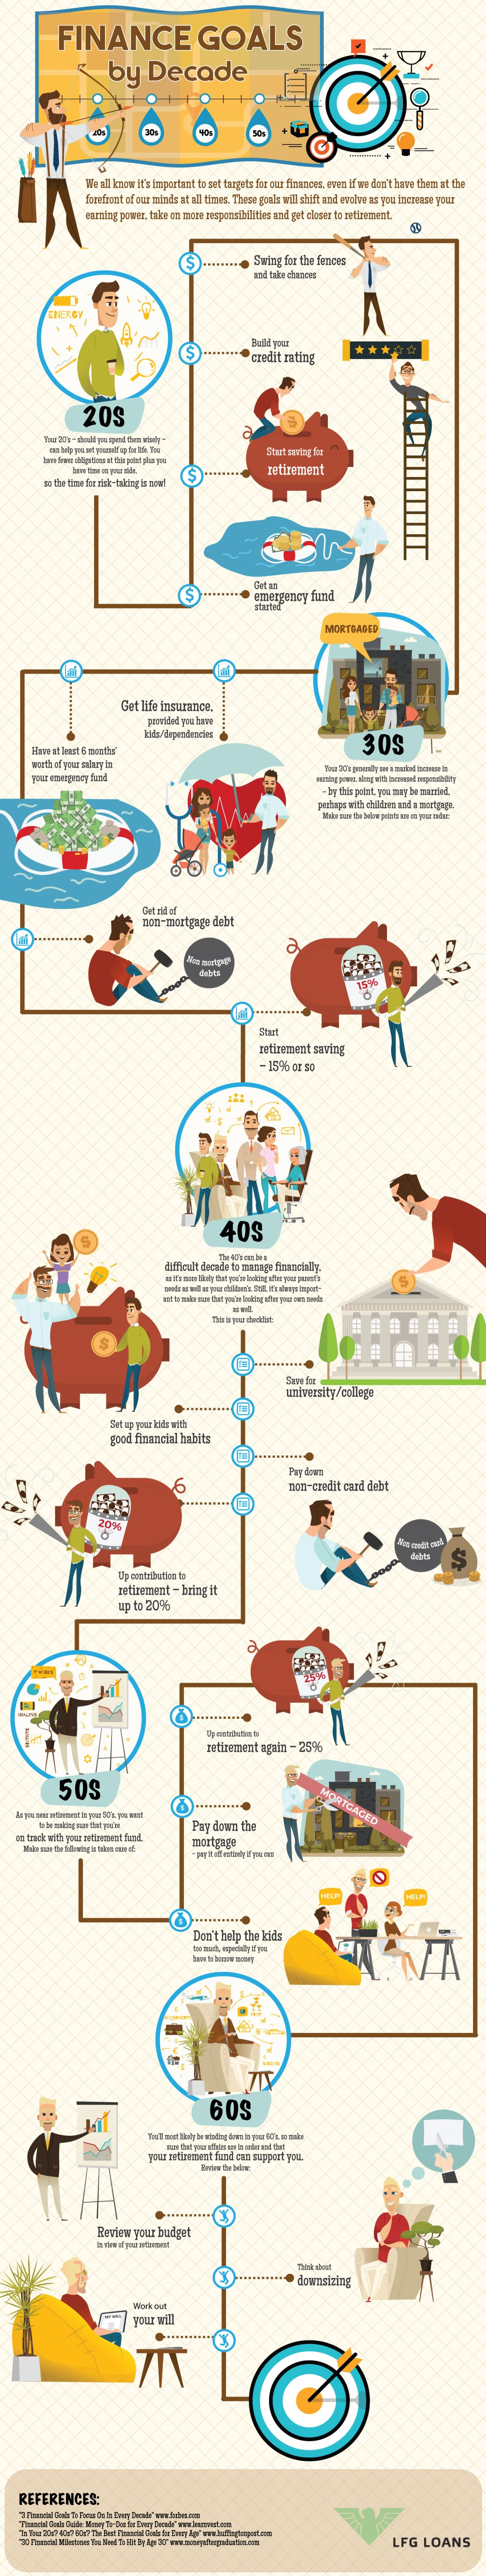 How to Make Financial Goals: Decade-Wise Planning from 20s to 60s - Infographic